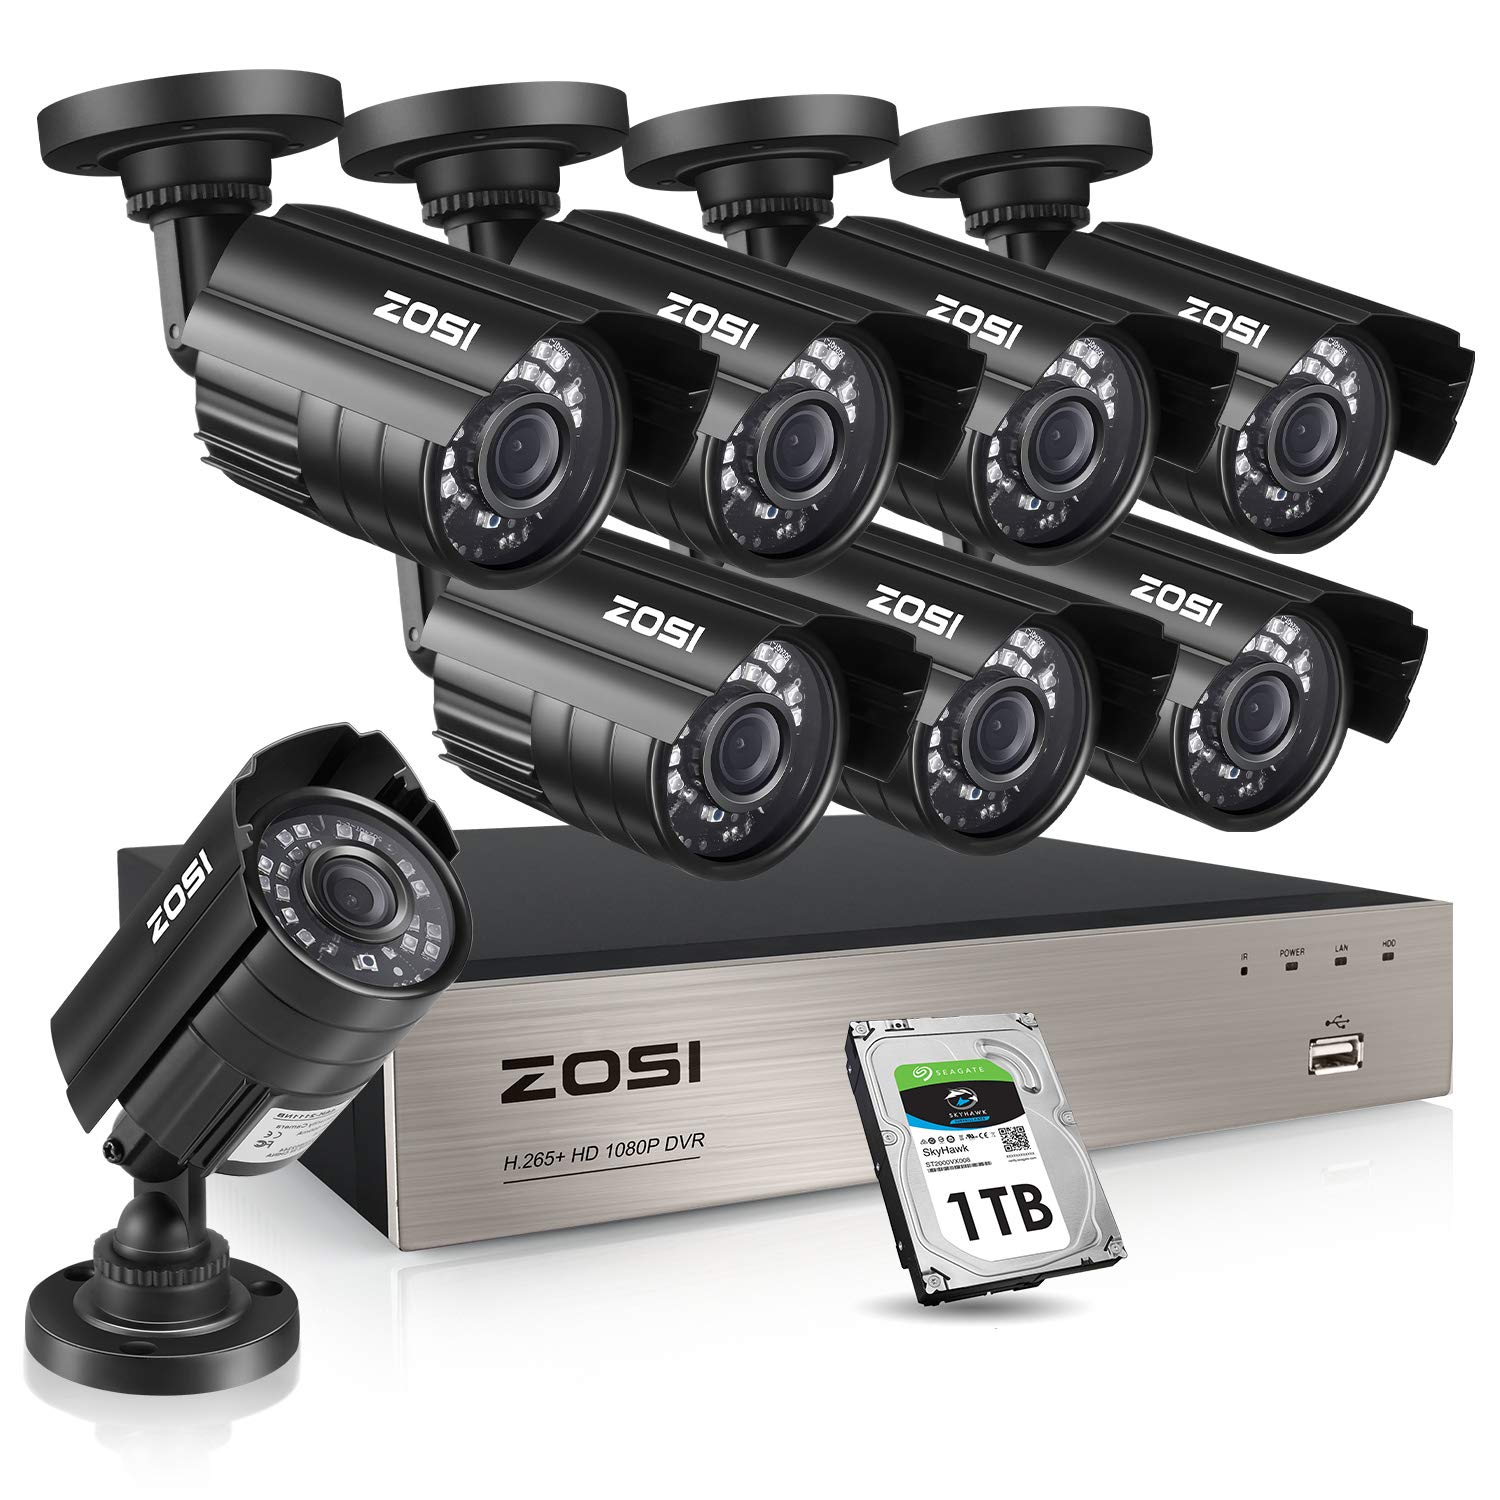 ZOSI 8CH 1080P Security Cameras System with Hard Drive 1TB,8Channel 1080P CCTV DVR Recorder with 8pcs 1080P HD Indoor Outdoor 1920TVL Surveillance Cameras with Night Vision for 24/7 Recording